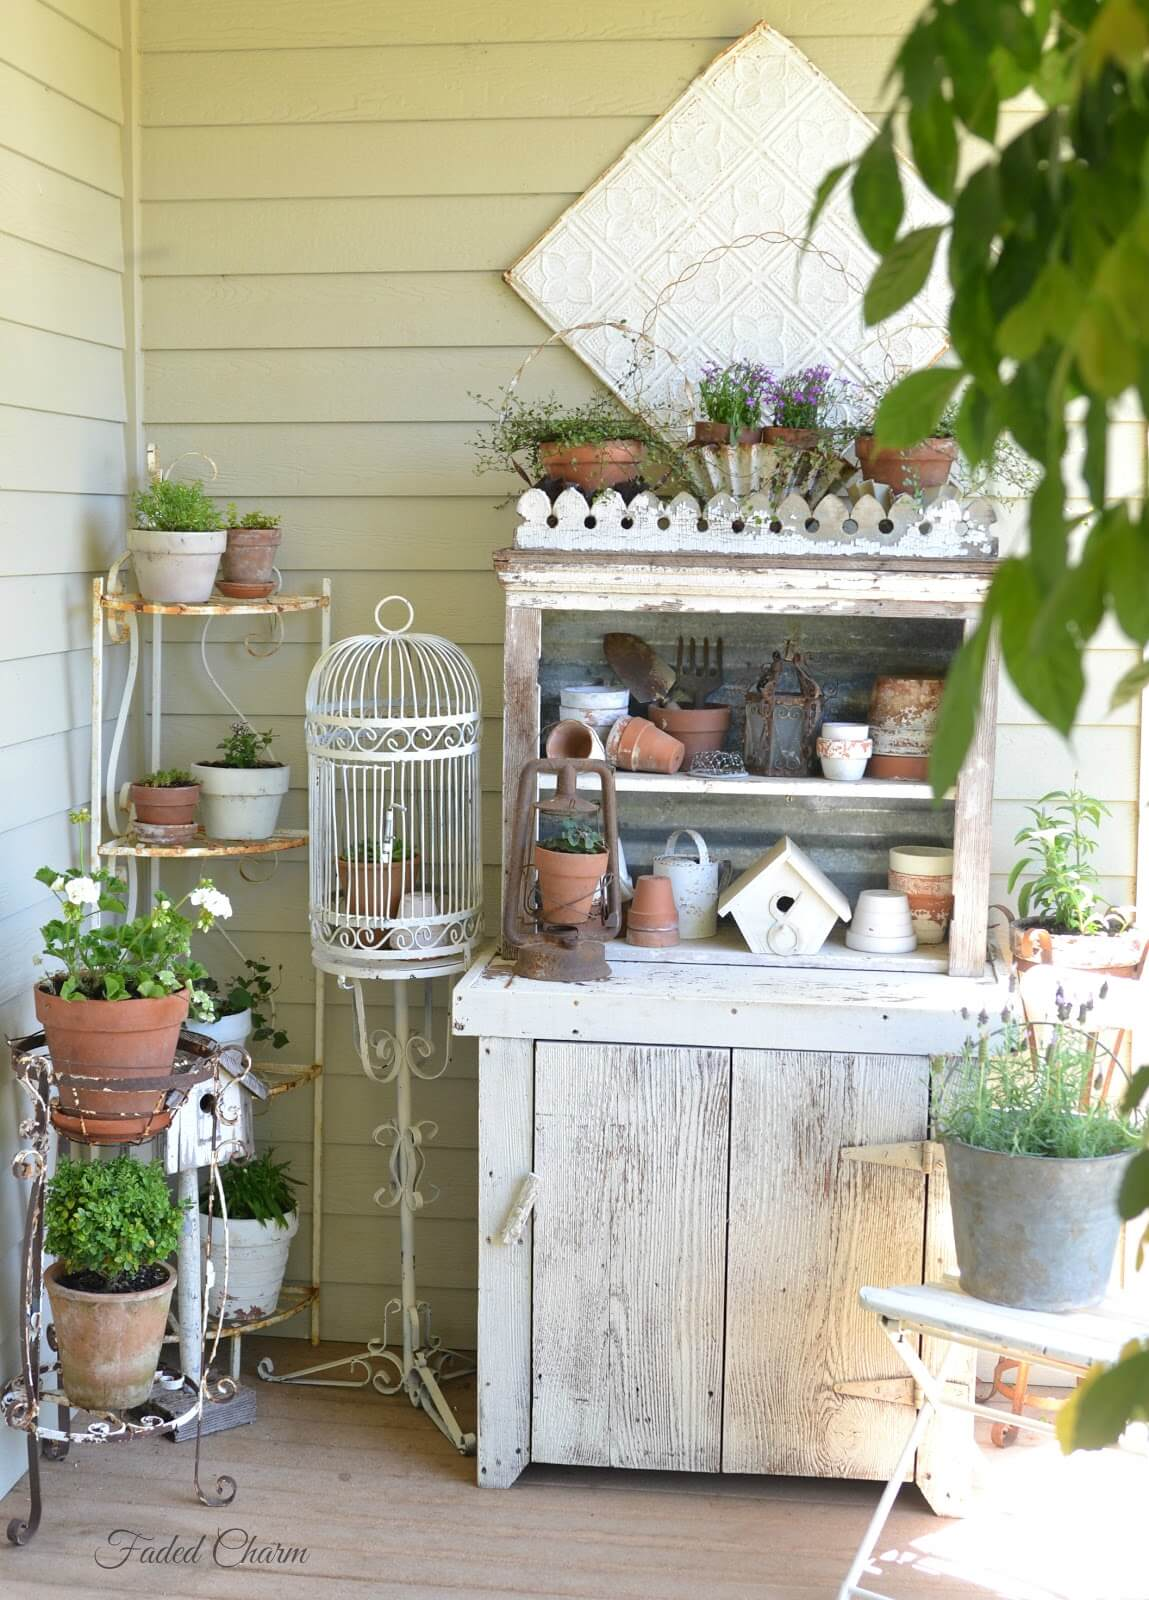 Shabby Chic Gardener's Dream Summer Porch Workspace